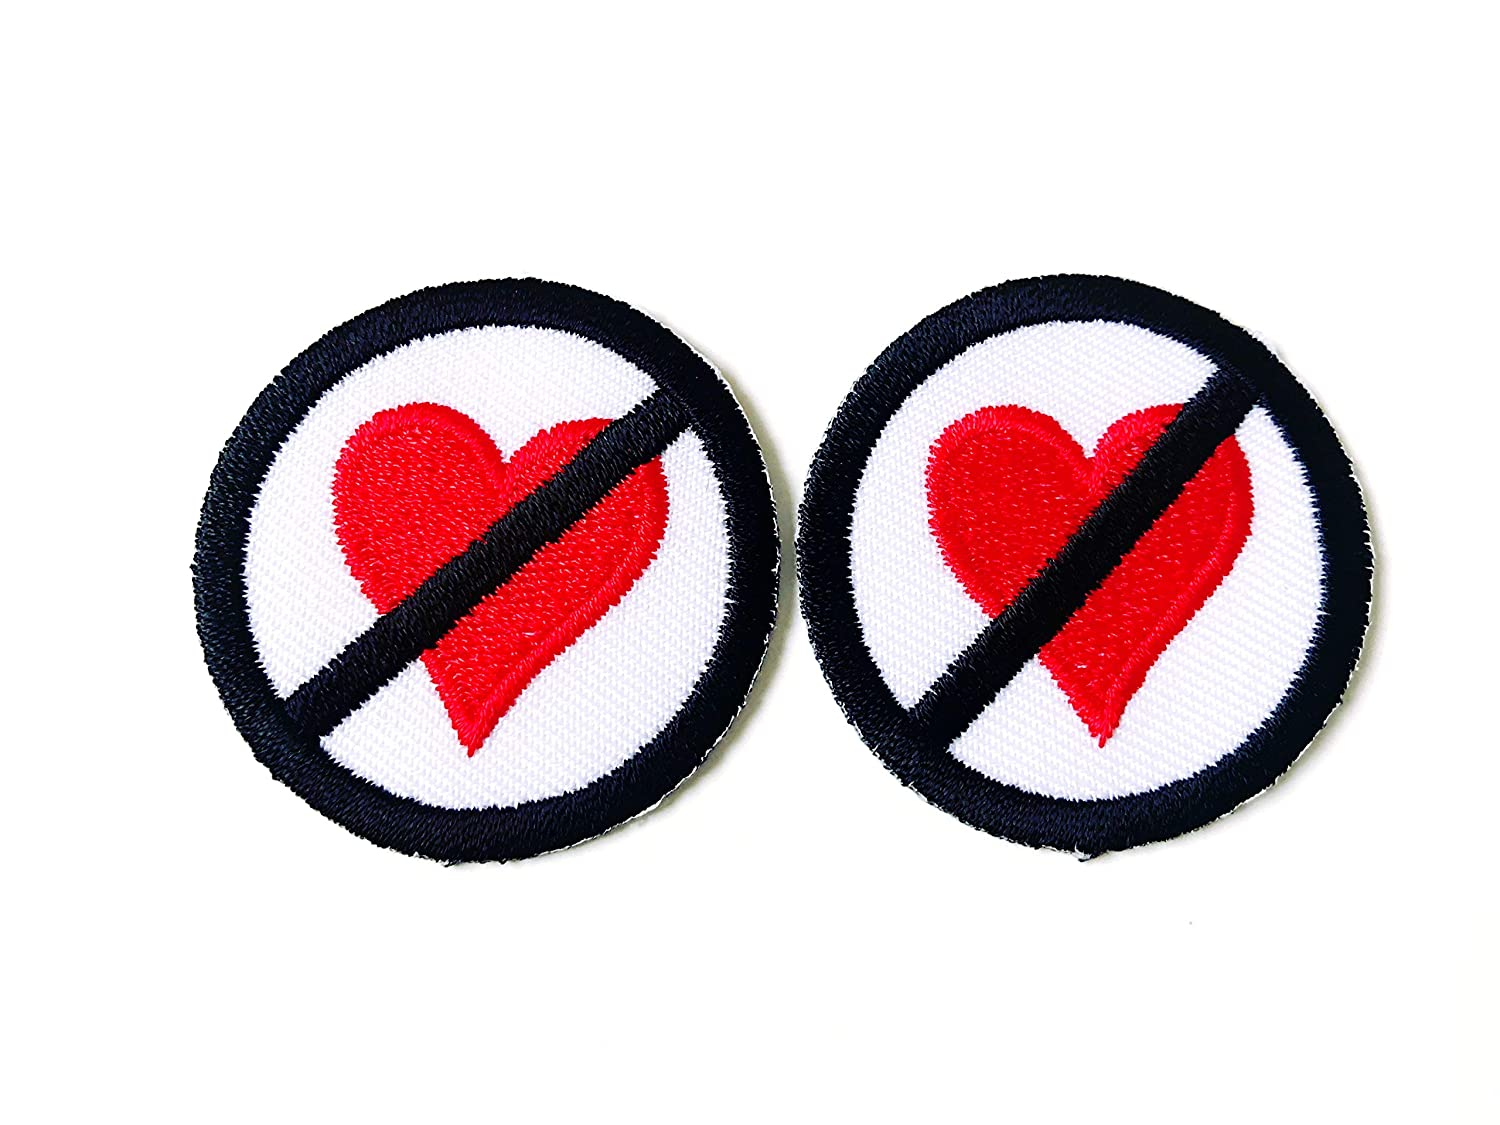 DO NOT DON/'T NO LOVE SIGN LOGO Round Embroidered Iron on Patch Free Postage